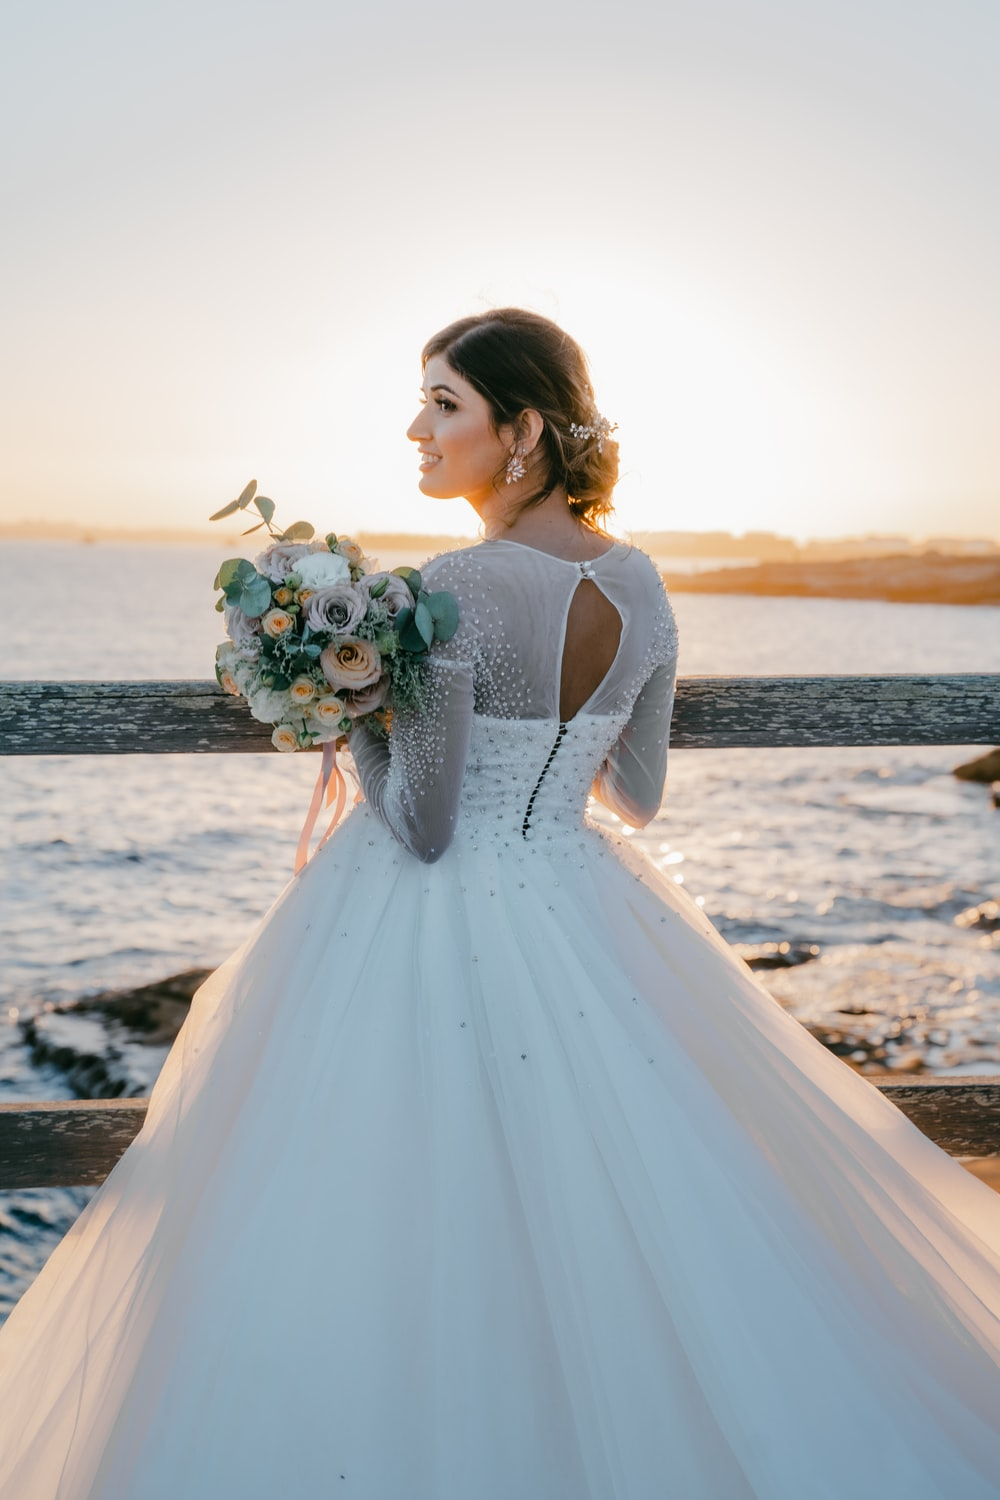 woman in white sleeveless dress holding bouquet of flowers standing on beach during sunset